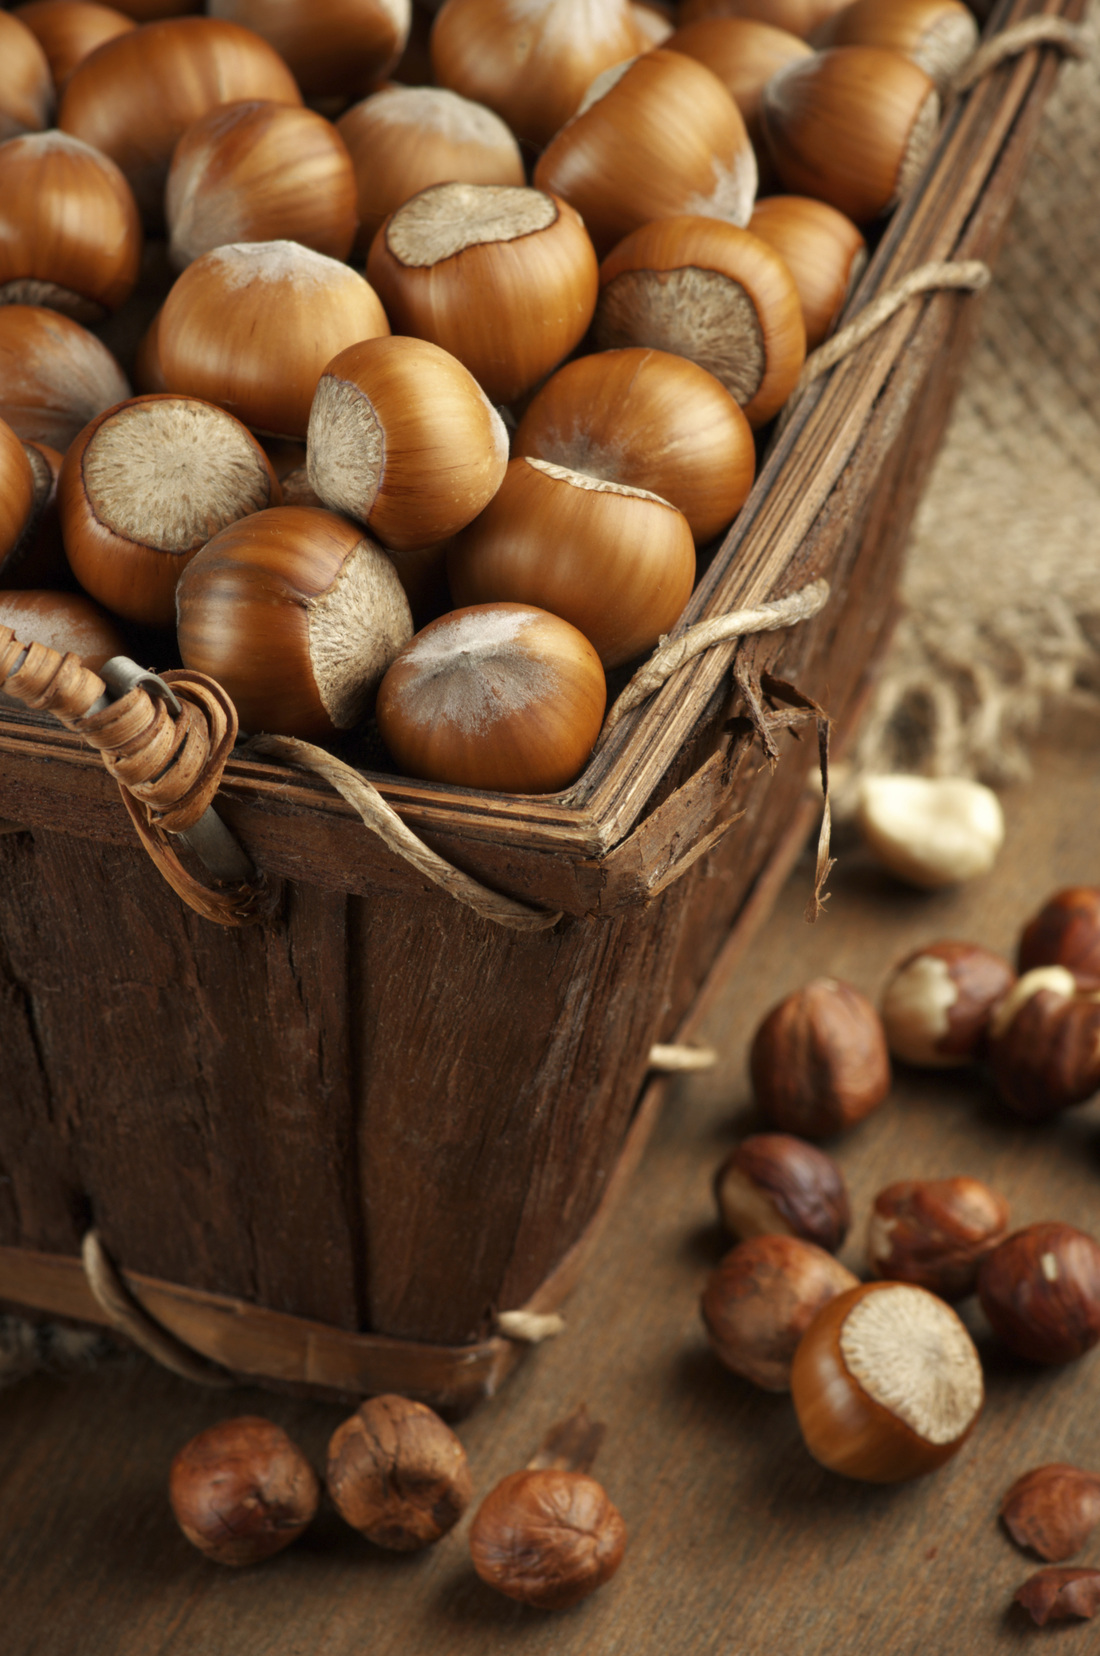 Hazelnuts in their shells, one of the things I miss from childhood